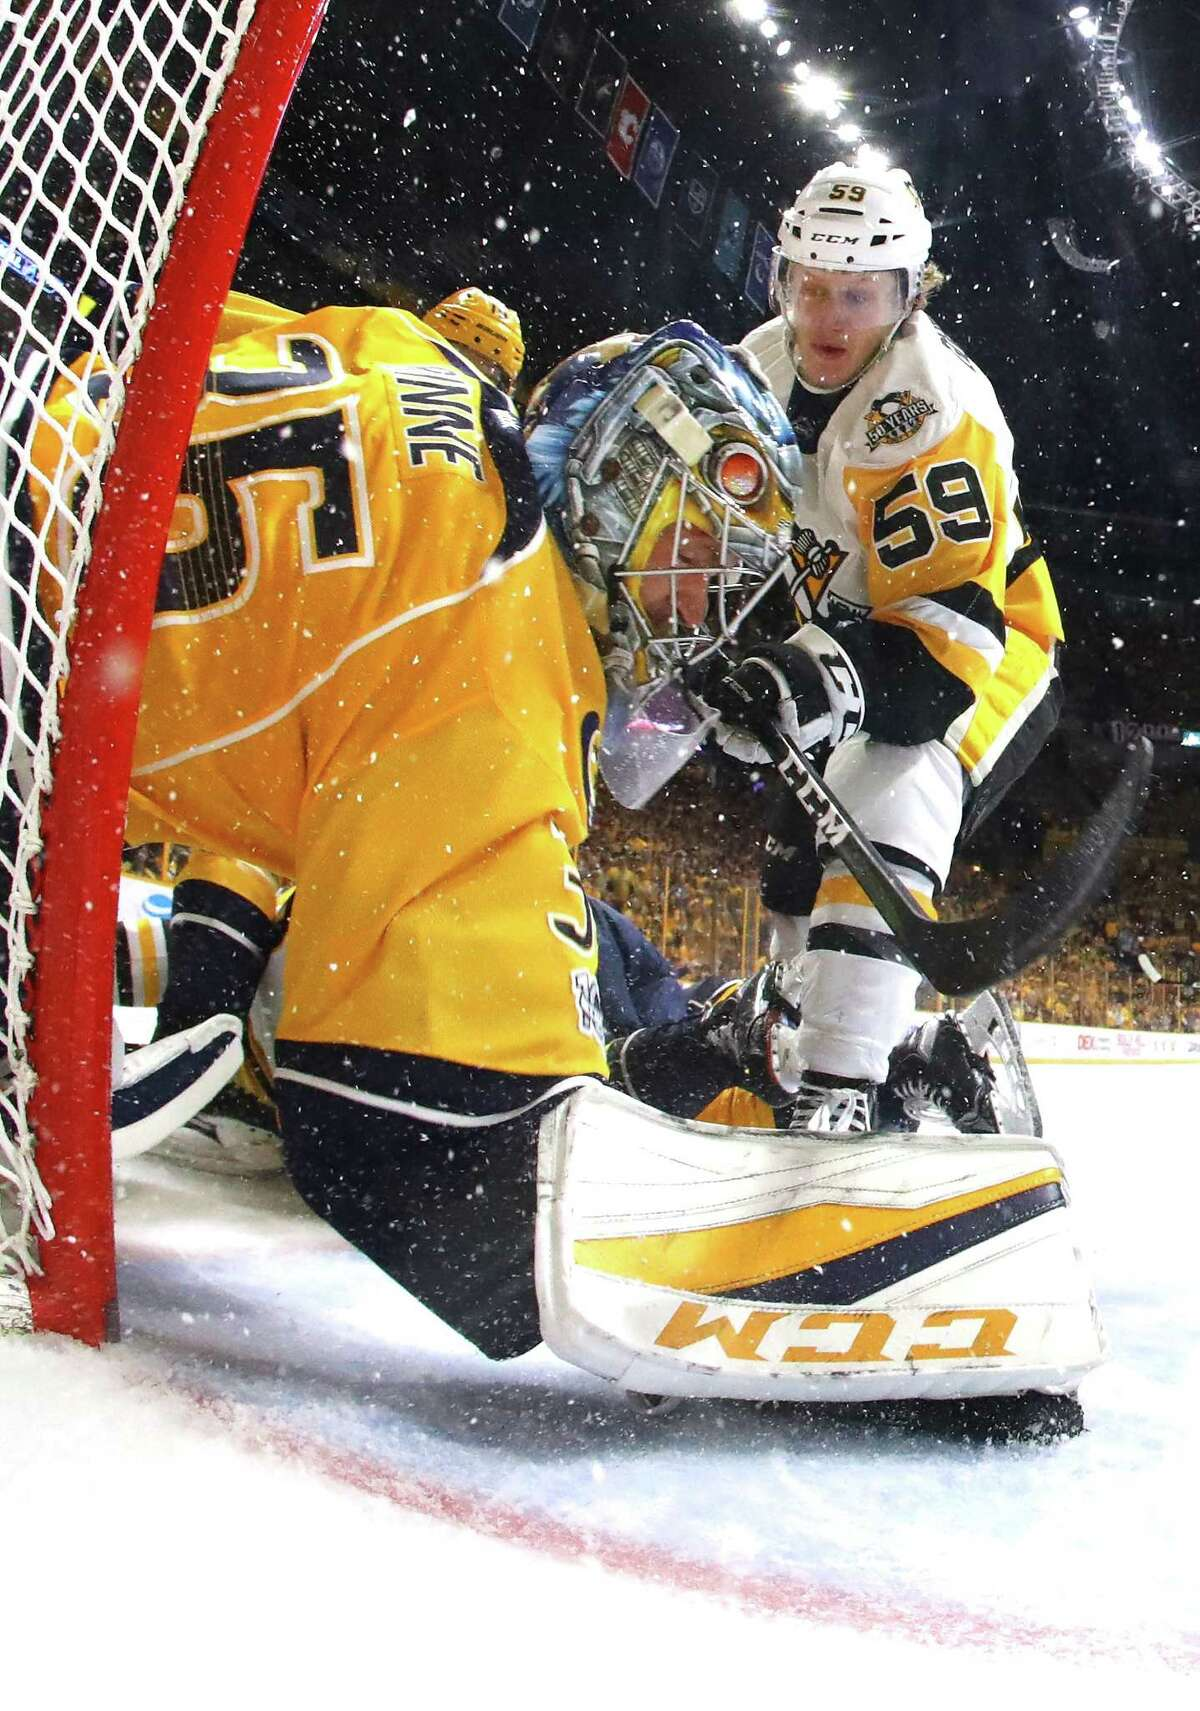 NASHVILLE, TN - JUNE 05: Pekka Rinne #35 of the Nashville Predators makes a glove save against Jake Guentzel #59 of the Pittsburgh Penguins during the second period in Game Four of the 2017 NHL Stanley Cup Final at the Bridgestone Arena on June 5, 2017 in Nashville, Tennessee. (Photo by Bruce Bennett/Getty Images) ORG XMIT: 700056236